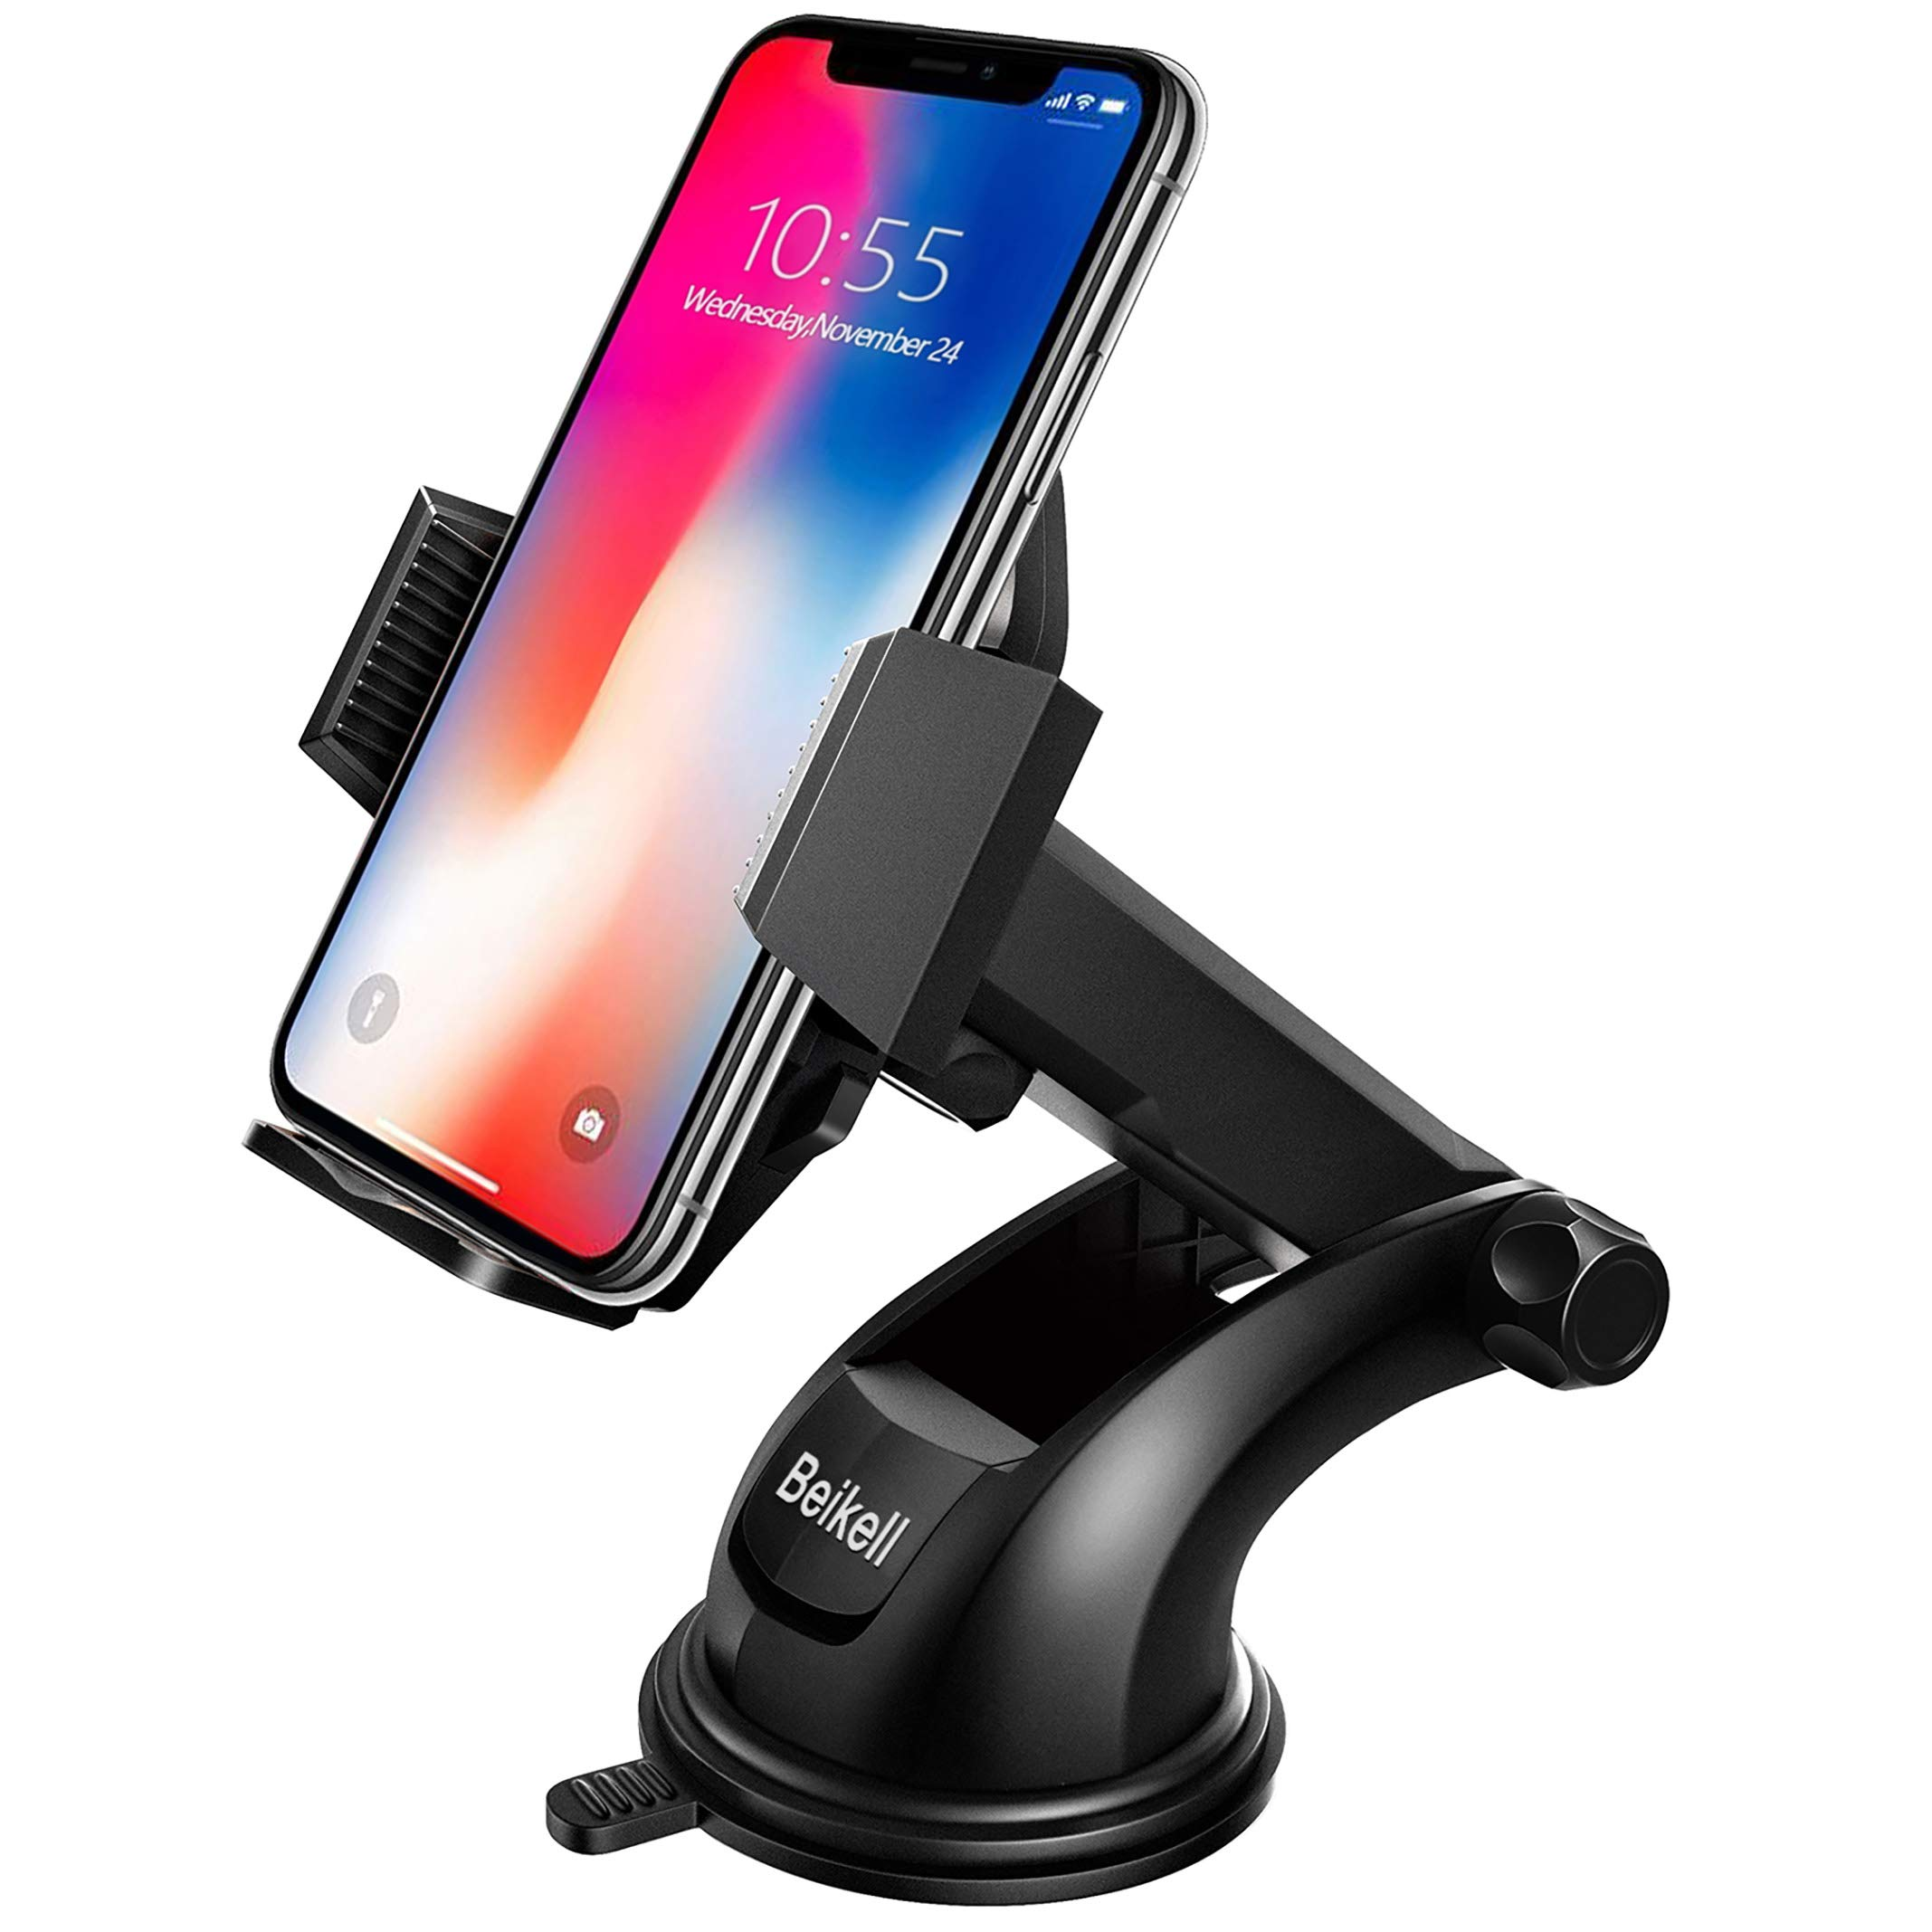 Beikell Car Phone Holder, Adjustable Car Phone Mount Cradle 360° Rotation - Phone Holder for Car with One Button Release…